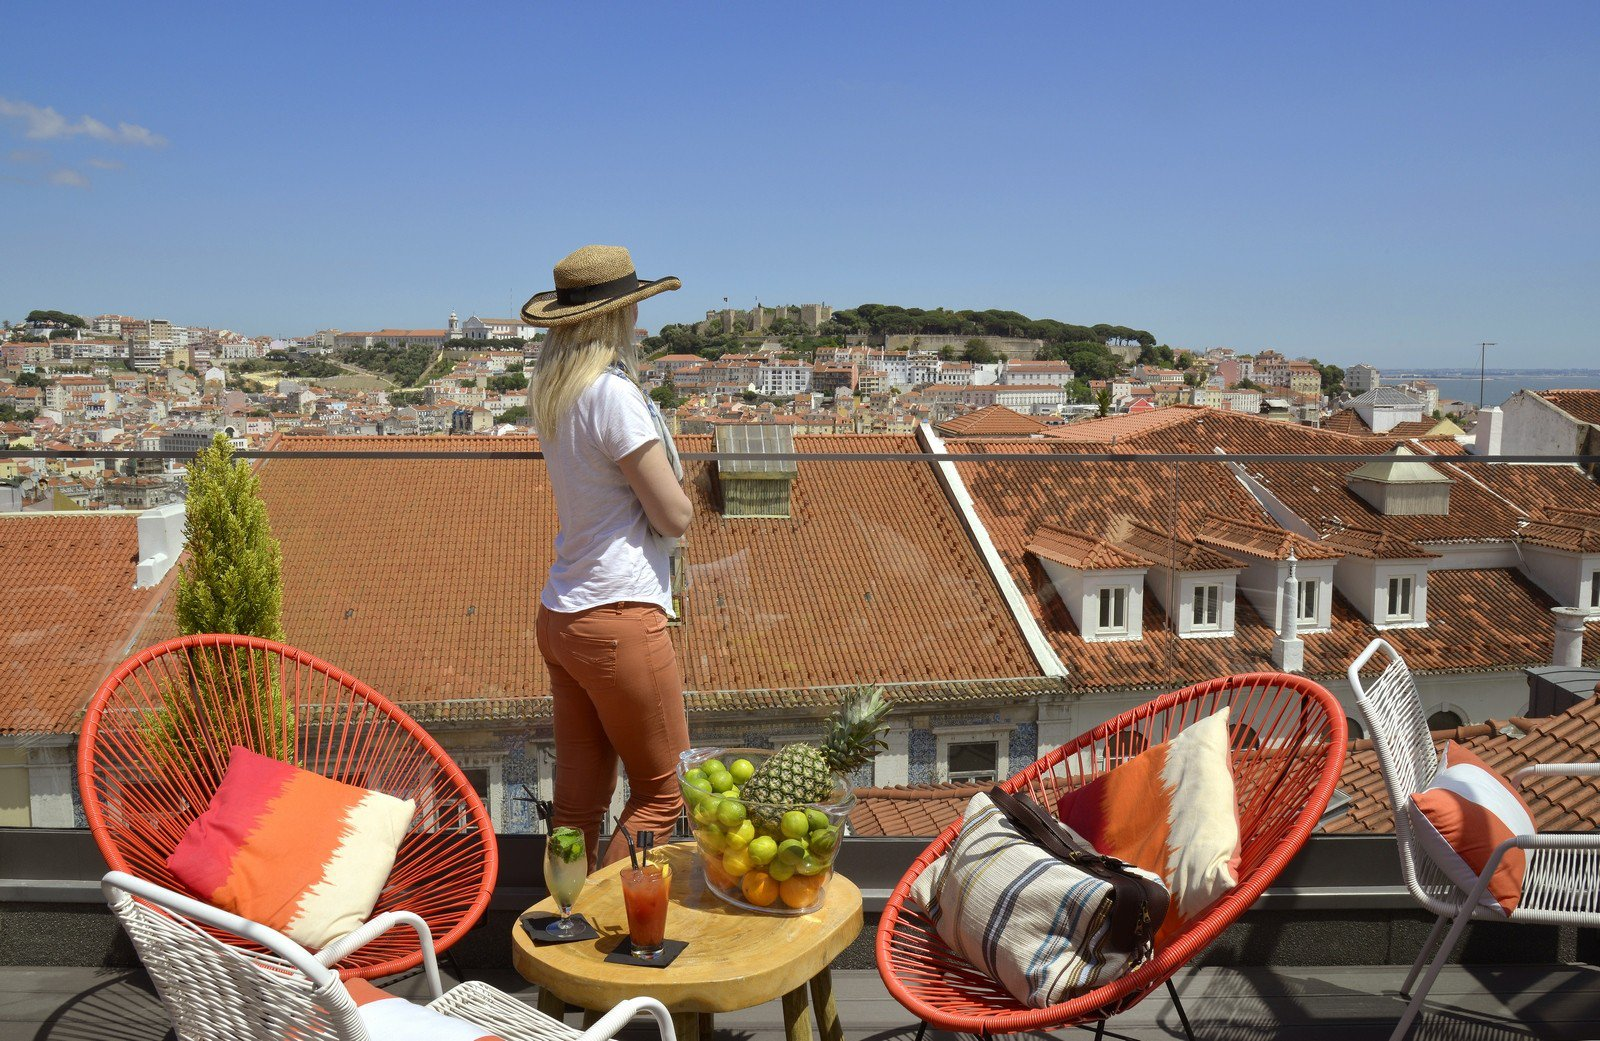 The Highlight of the 9 Hotel Mercy is definitely its roof top terrace, overlooking the St. George Castle in Lisbon, Portugal